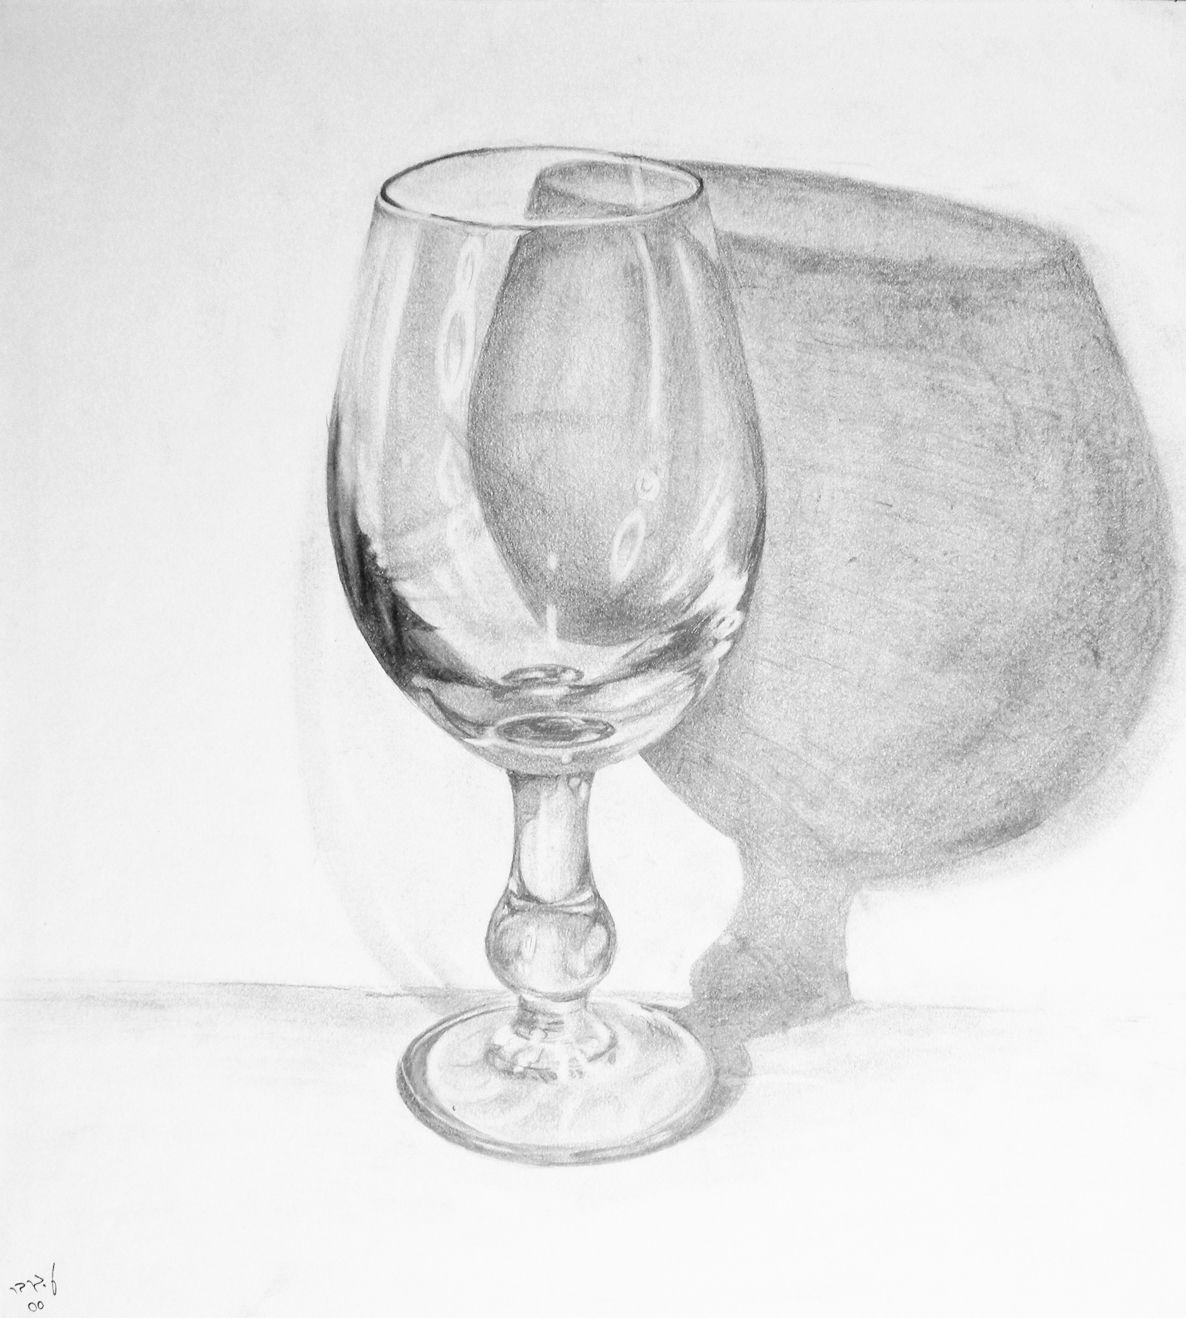 Glass 6b pencil my art in 2019 glass drawings sketch a day